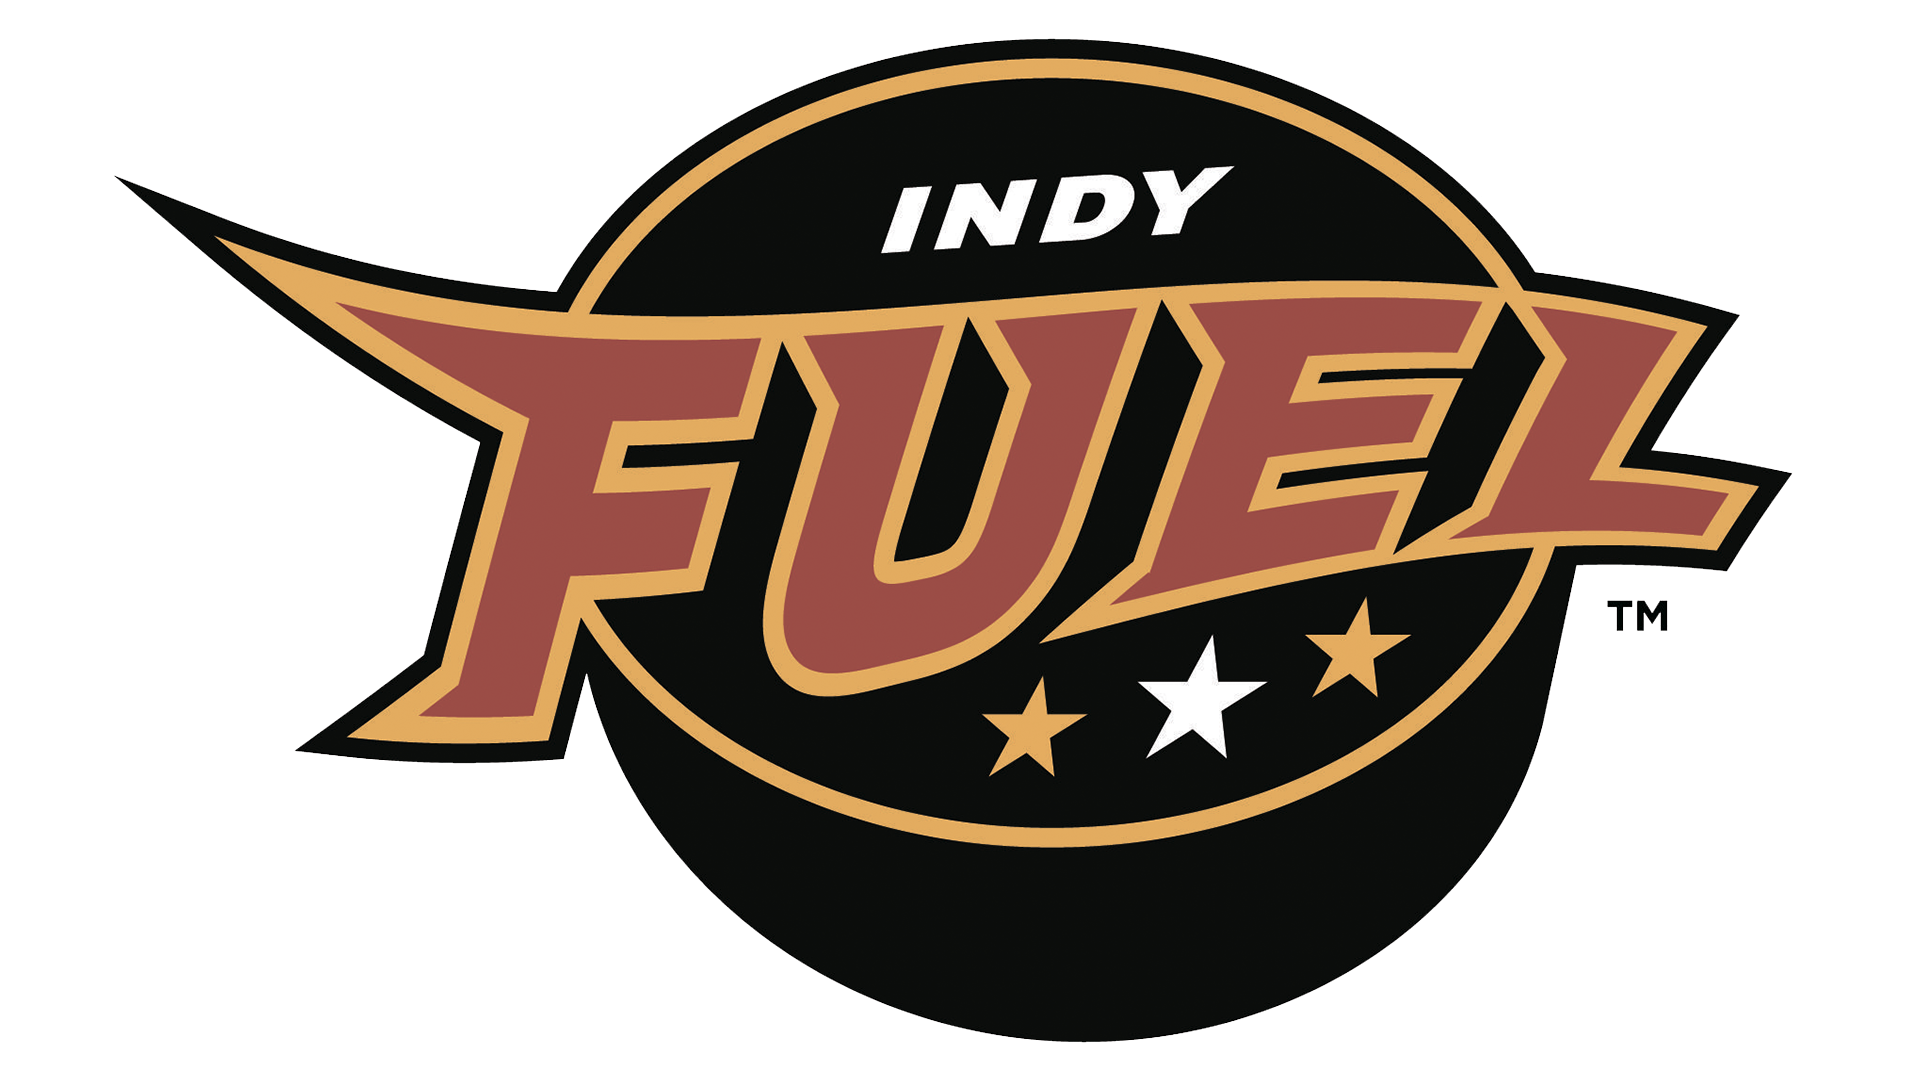 indy fuel logo indy fuel symbol meaning history and